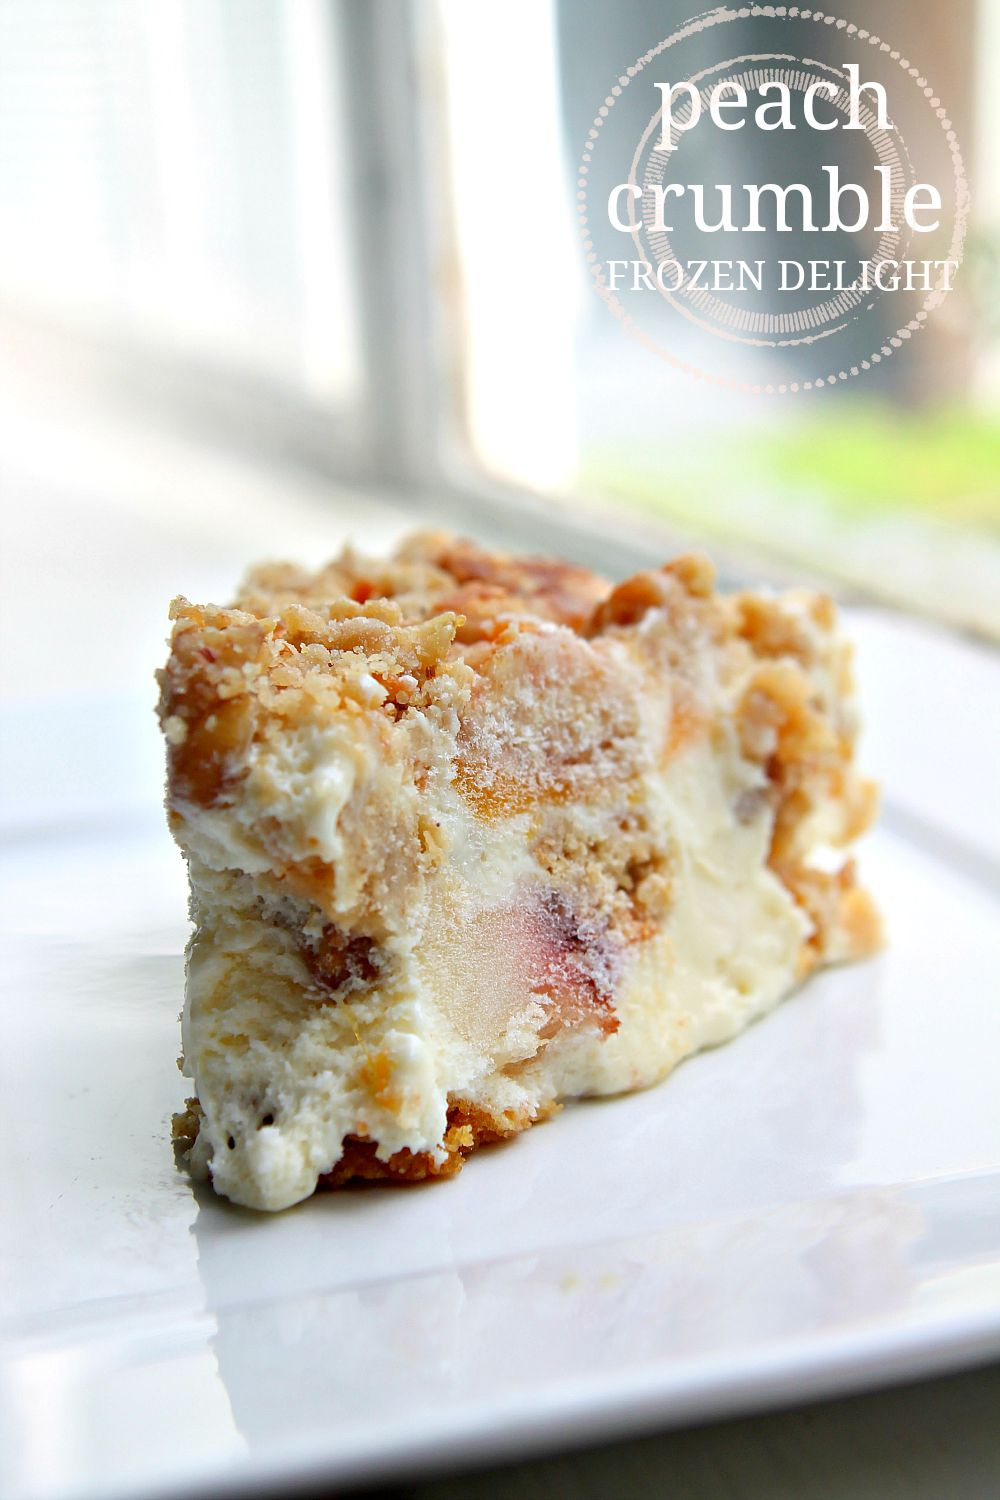 Peach Crumble Frozen Delight 2--090715